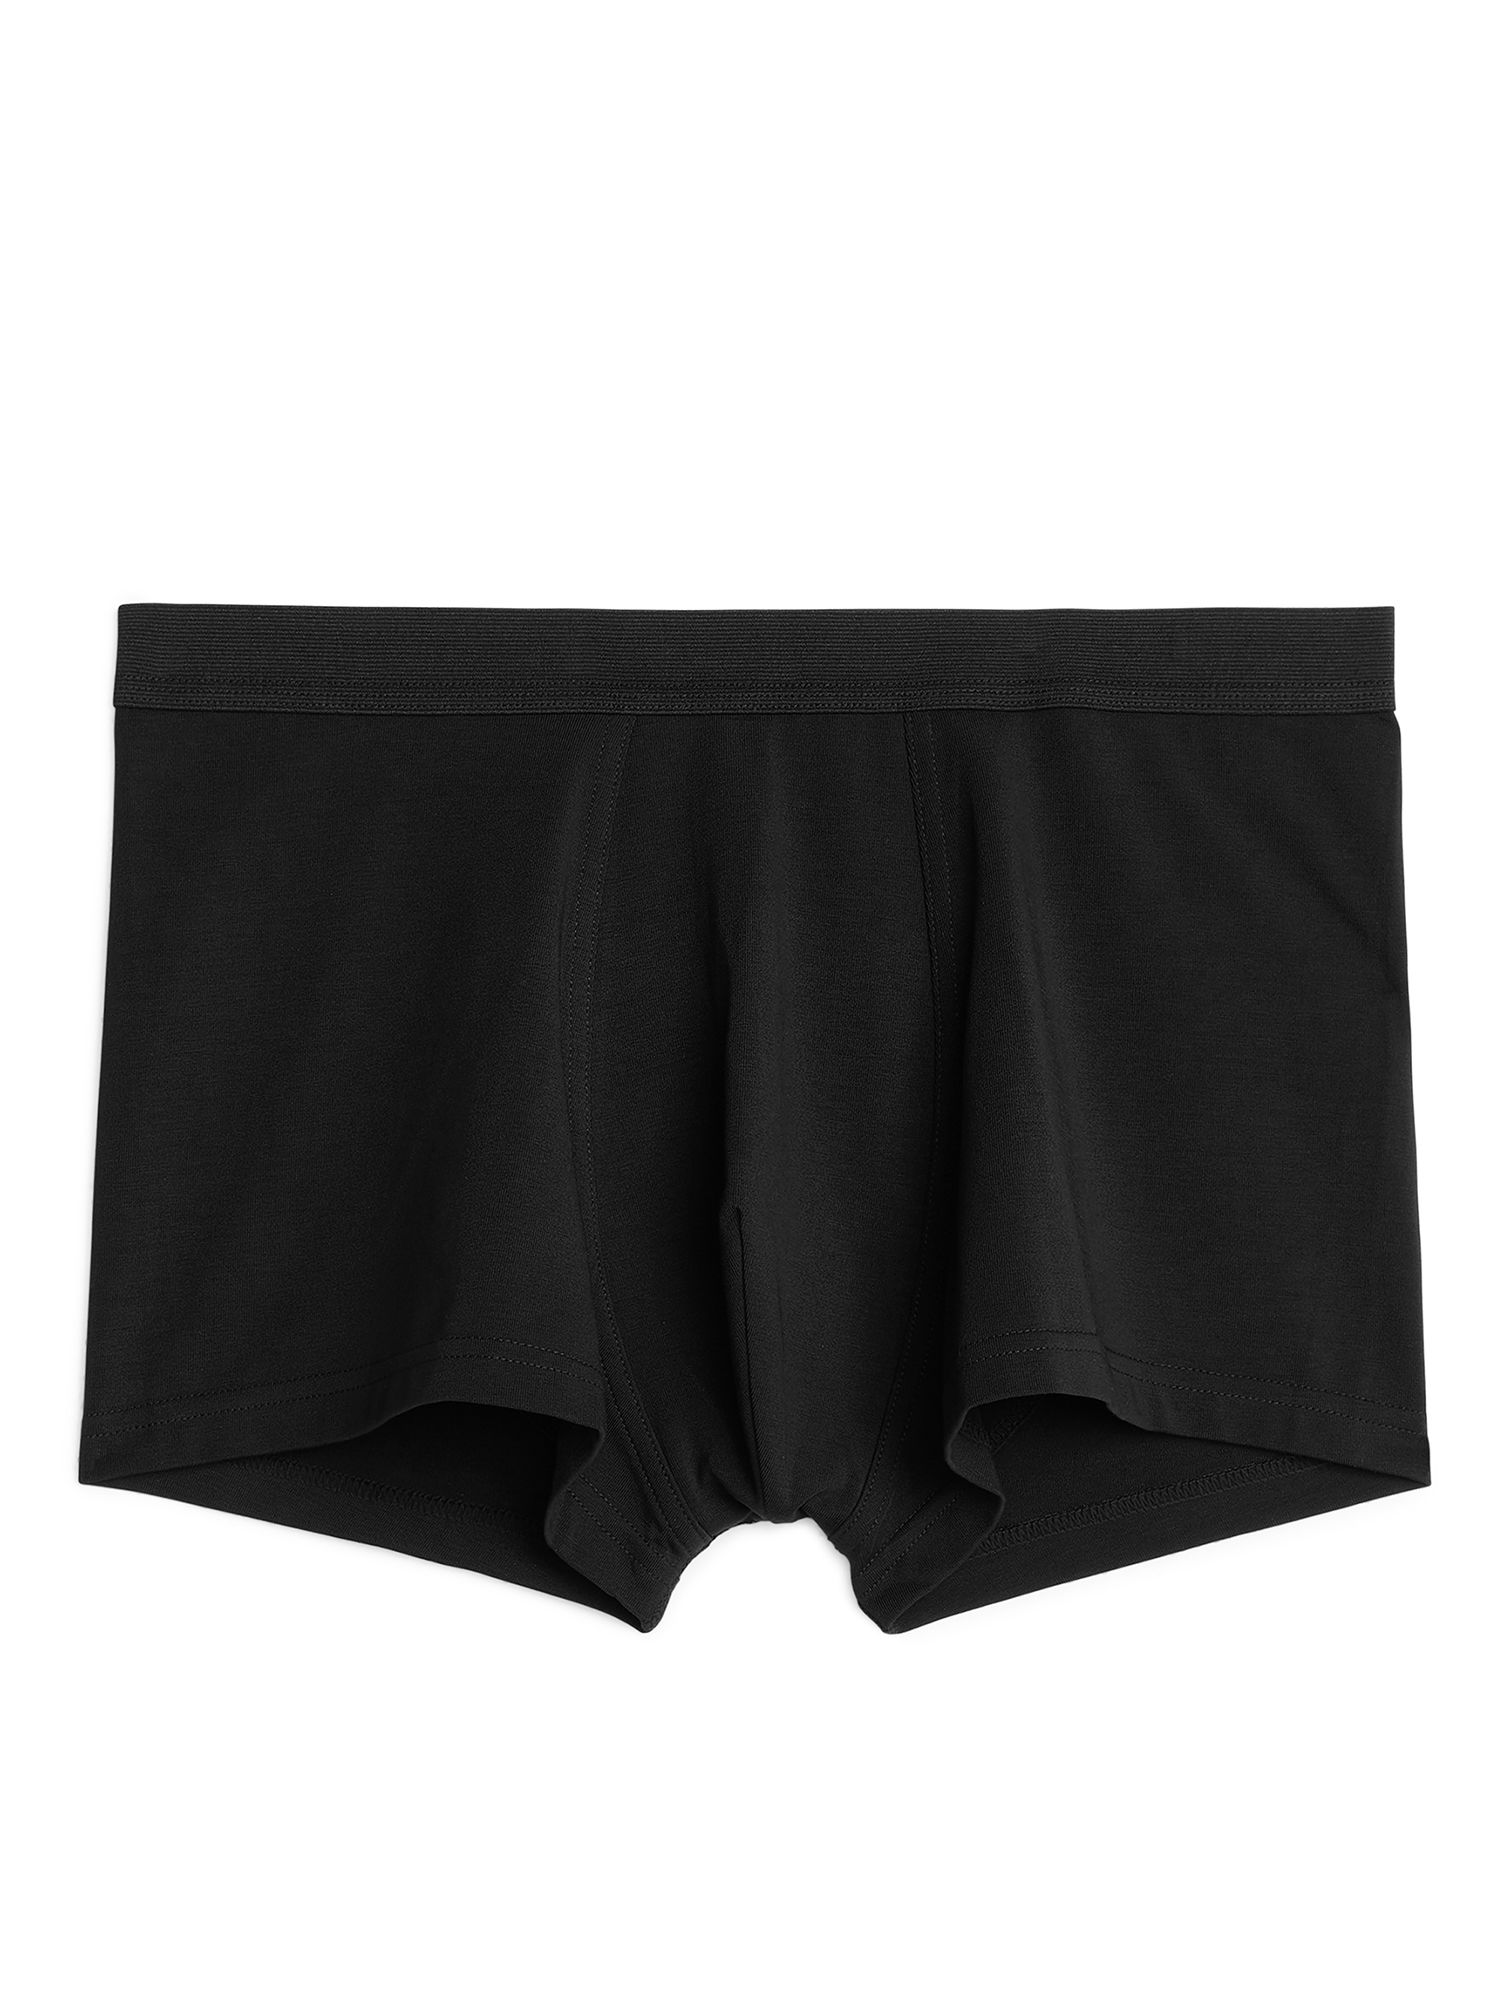 Fabric Swatch image of Arket pima cotton trunks in black